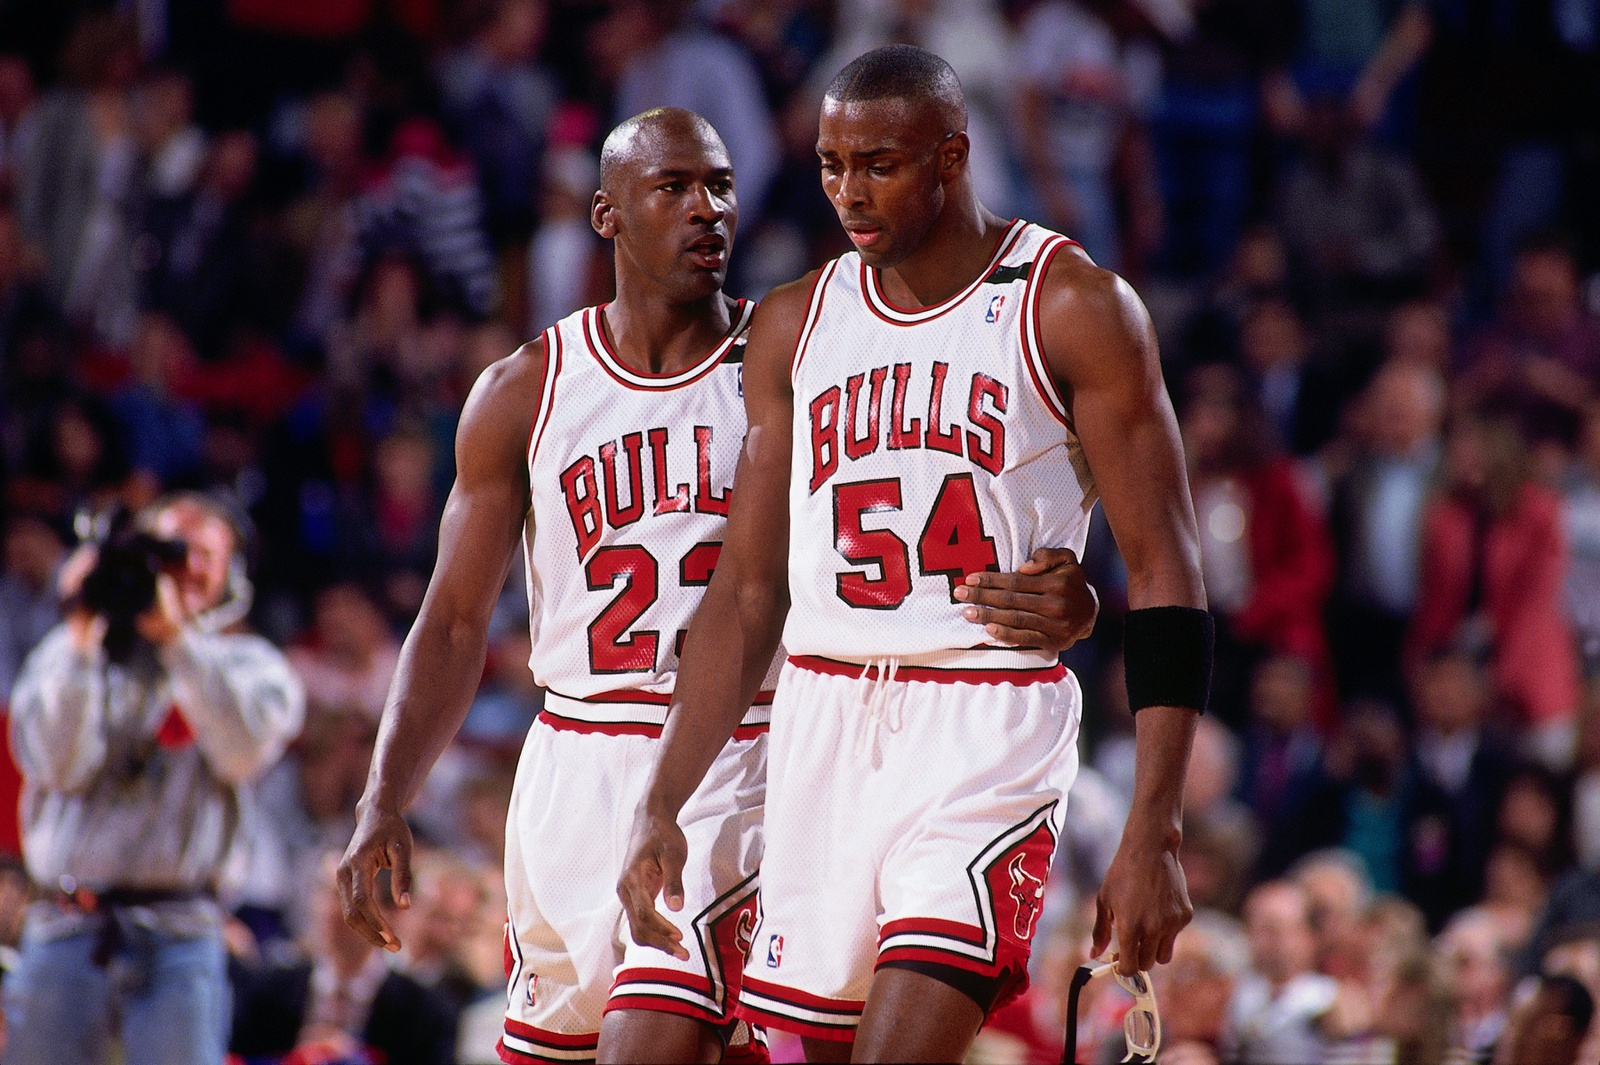 Michael Jordan #23 comforts teammate Horace Grant #54 of the Chicago Bulls during Game One of the Eastern Conference Finals against the Cleveland Cavaliers played on May 19, 1992 at Chicago Stadium in Chicago, Illinois.